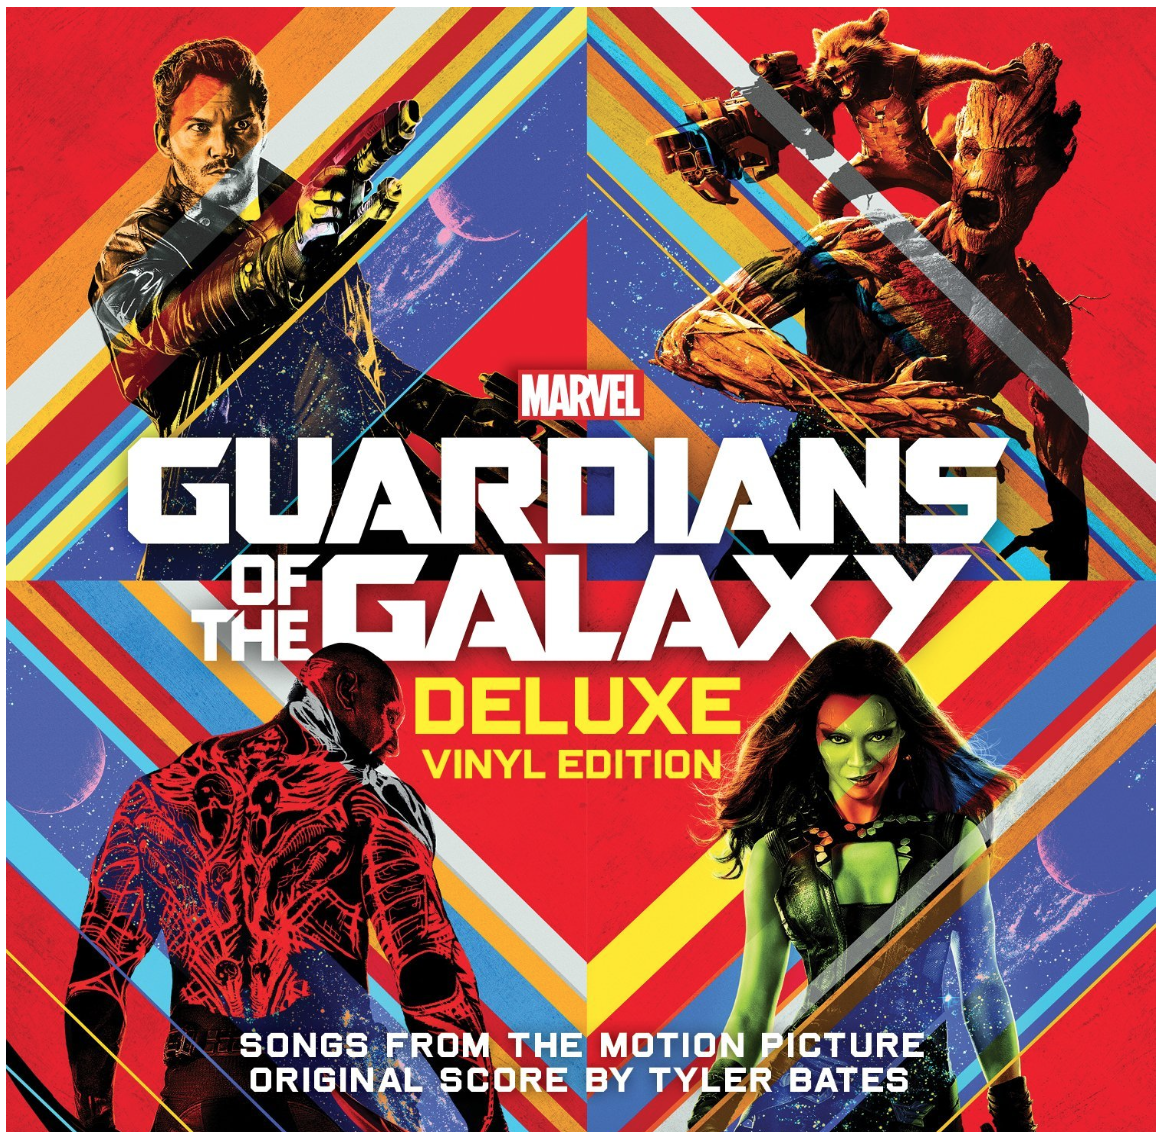 Various Artists | Marvel Guardians of the Galaxy Deluxe Vinyl Edition